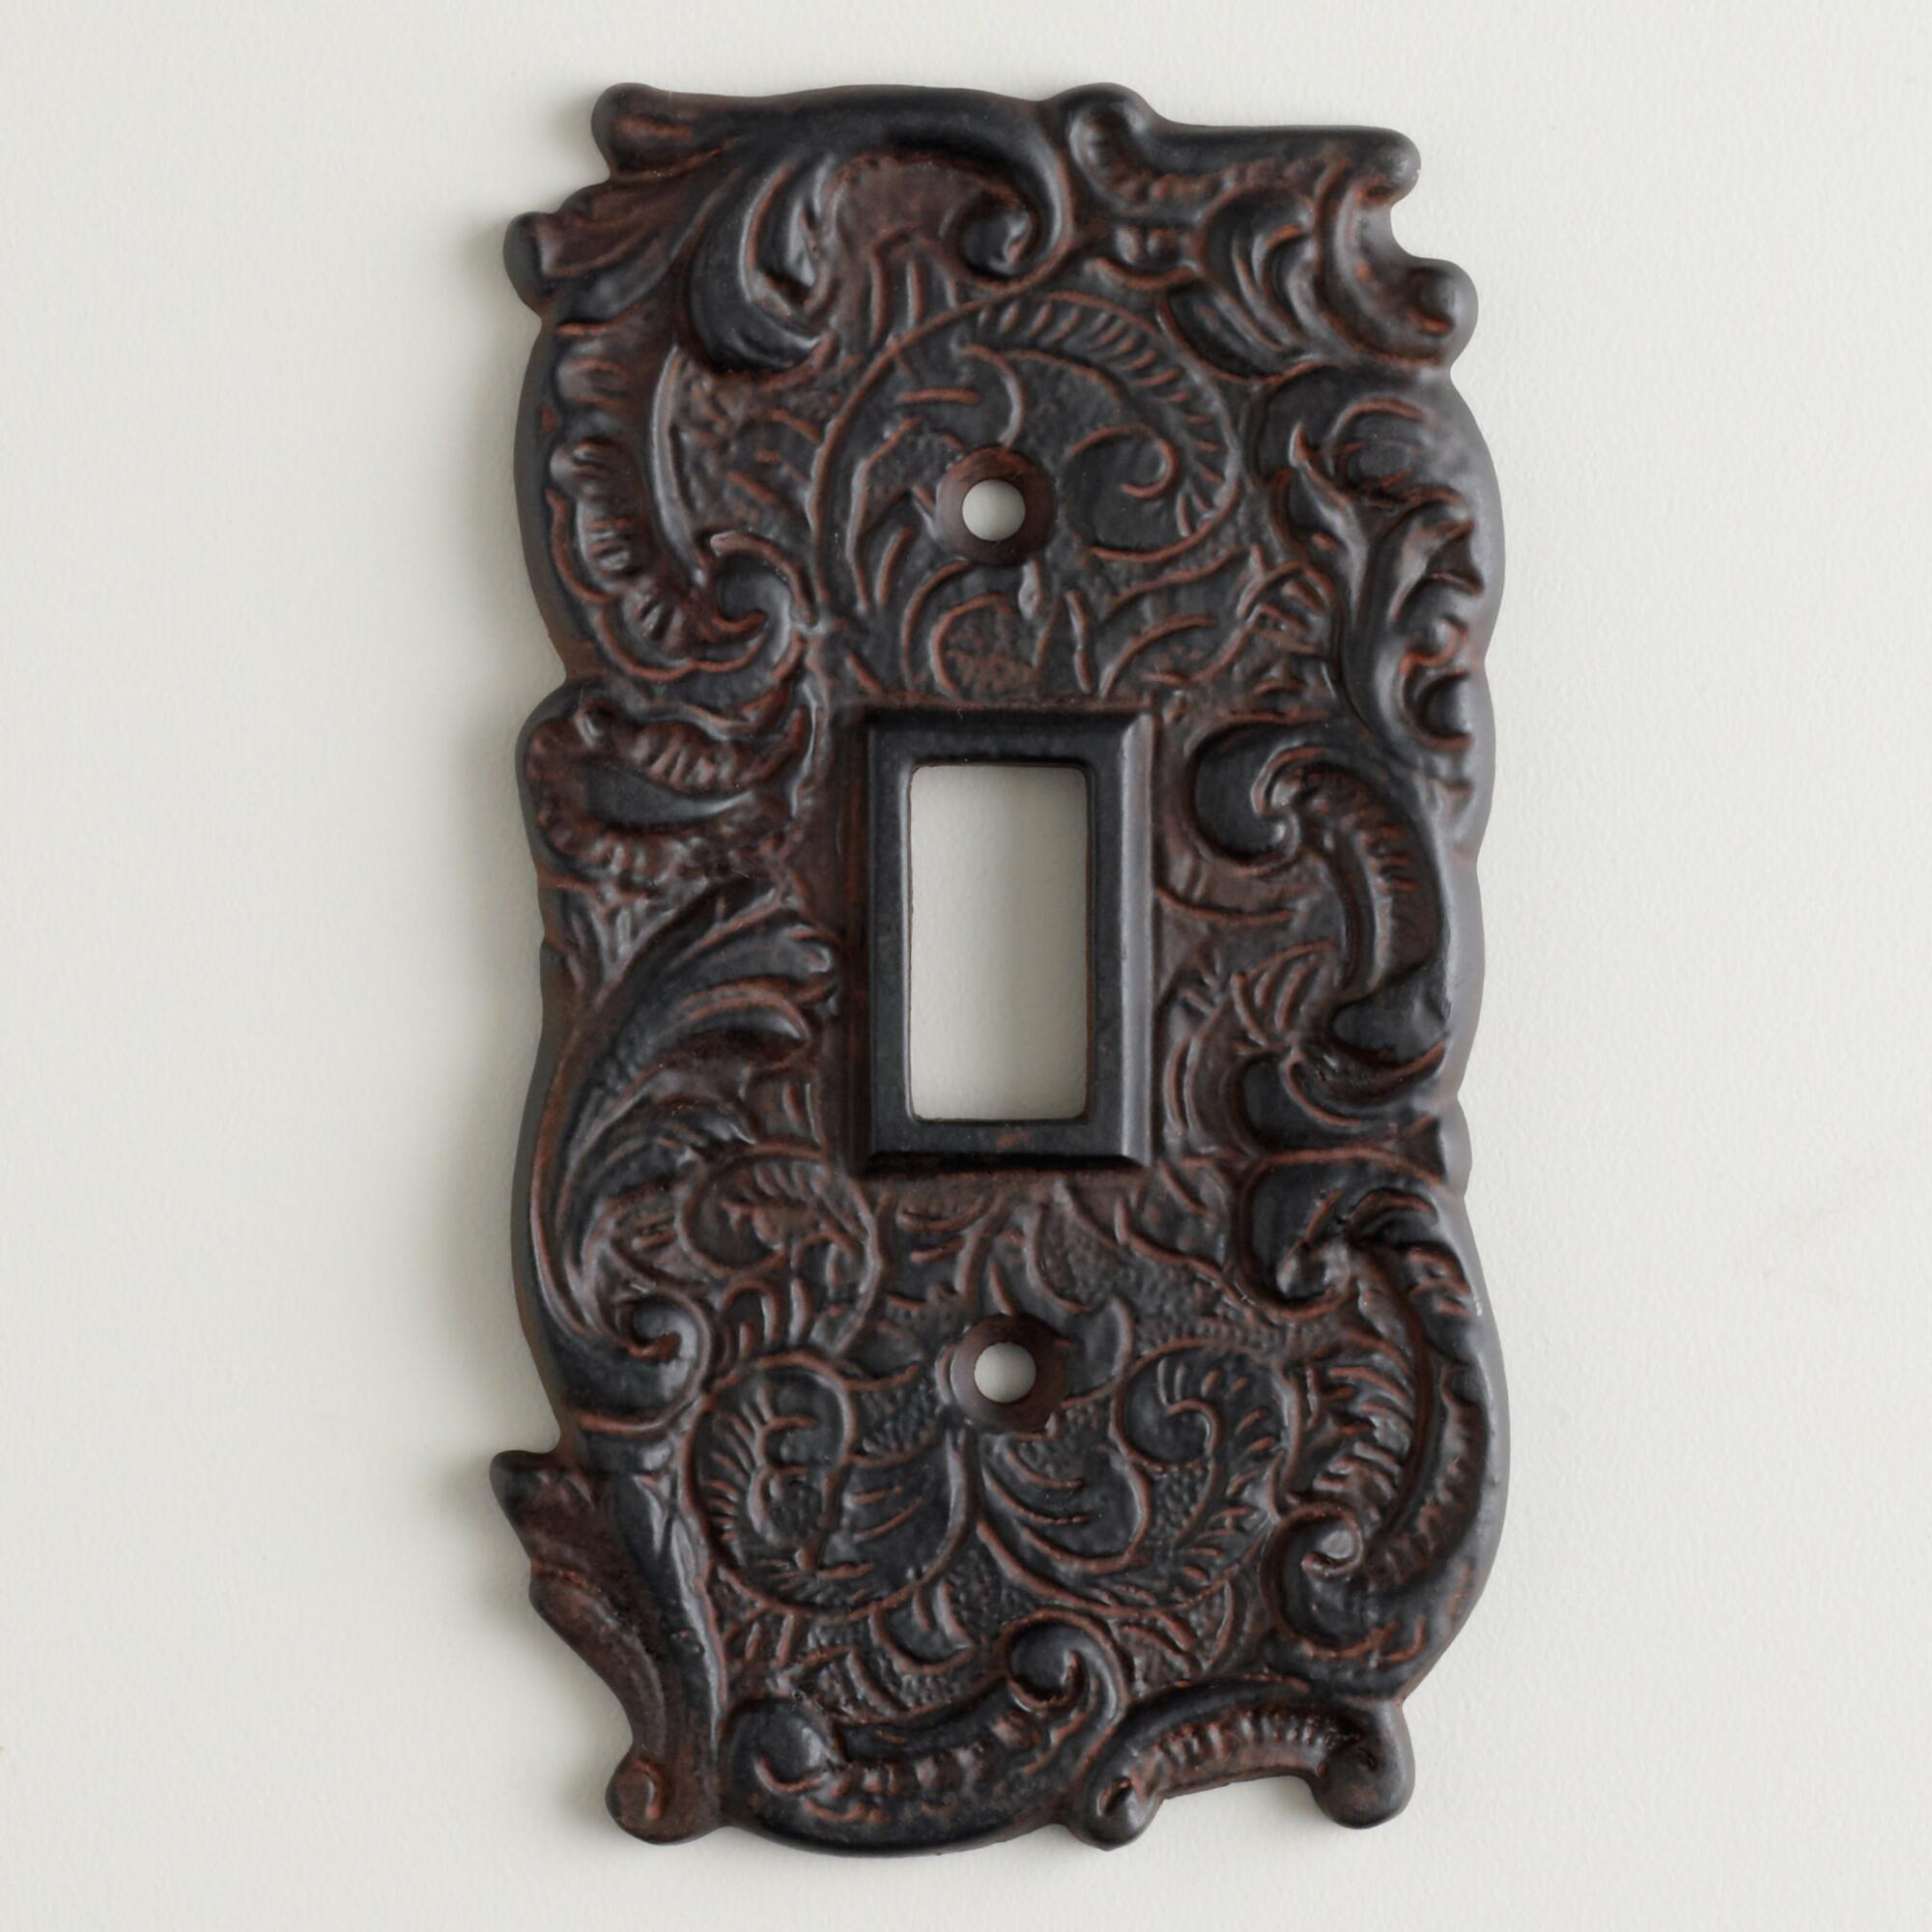 Single cast iron switch plate world market - Wrought iron switch plate covers ...